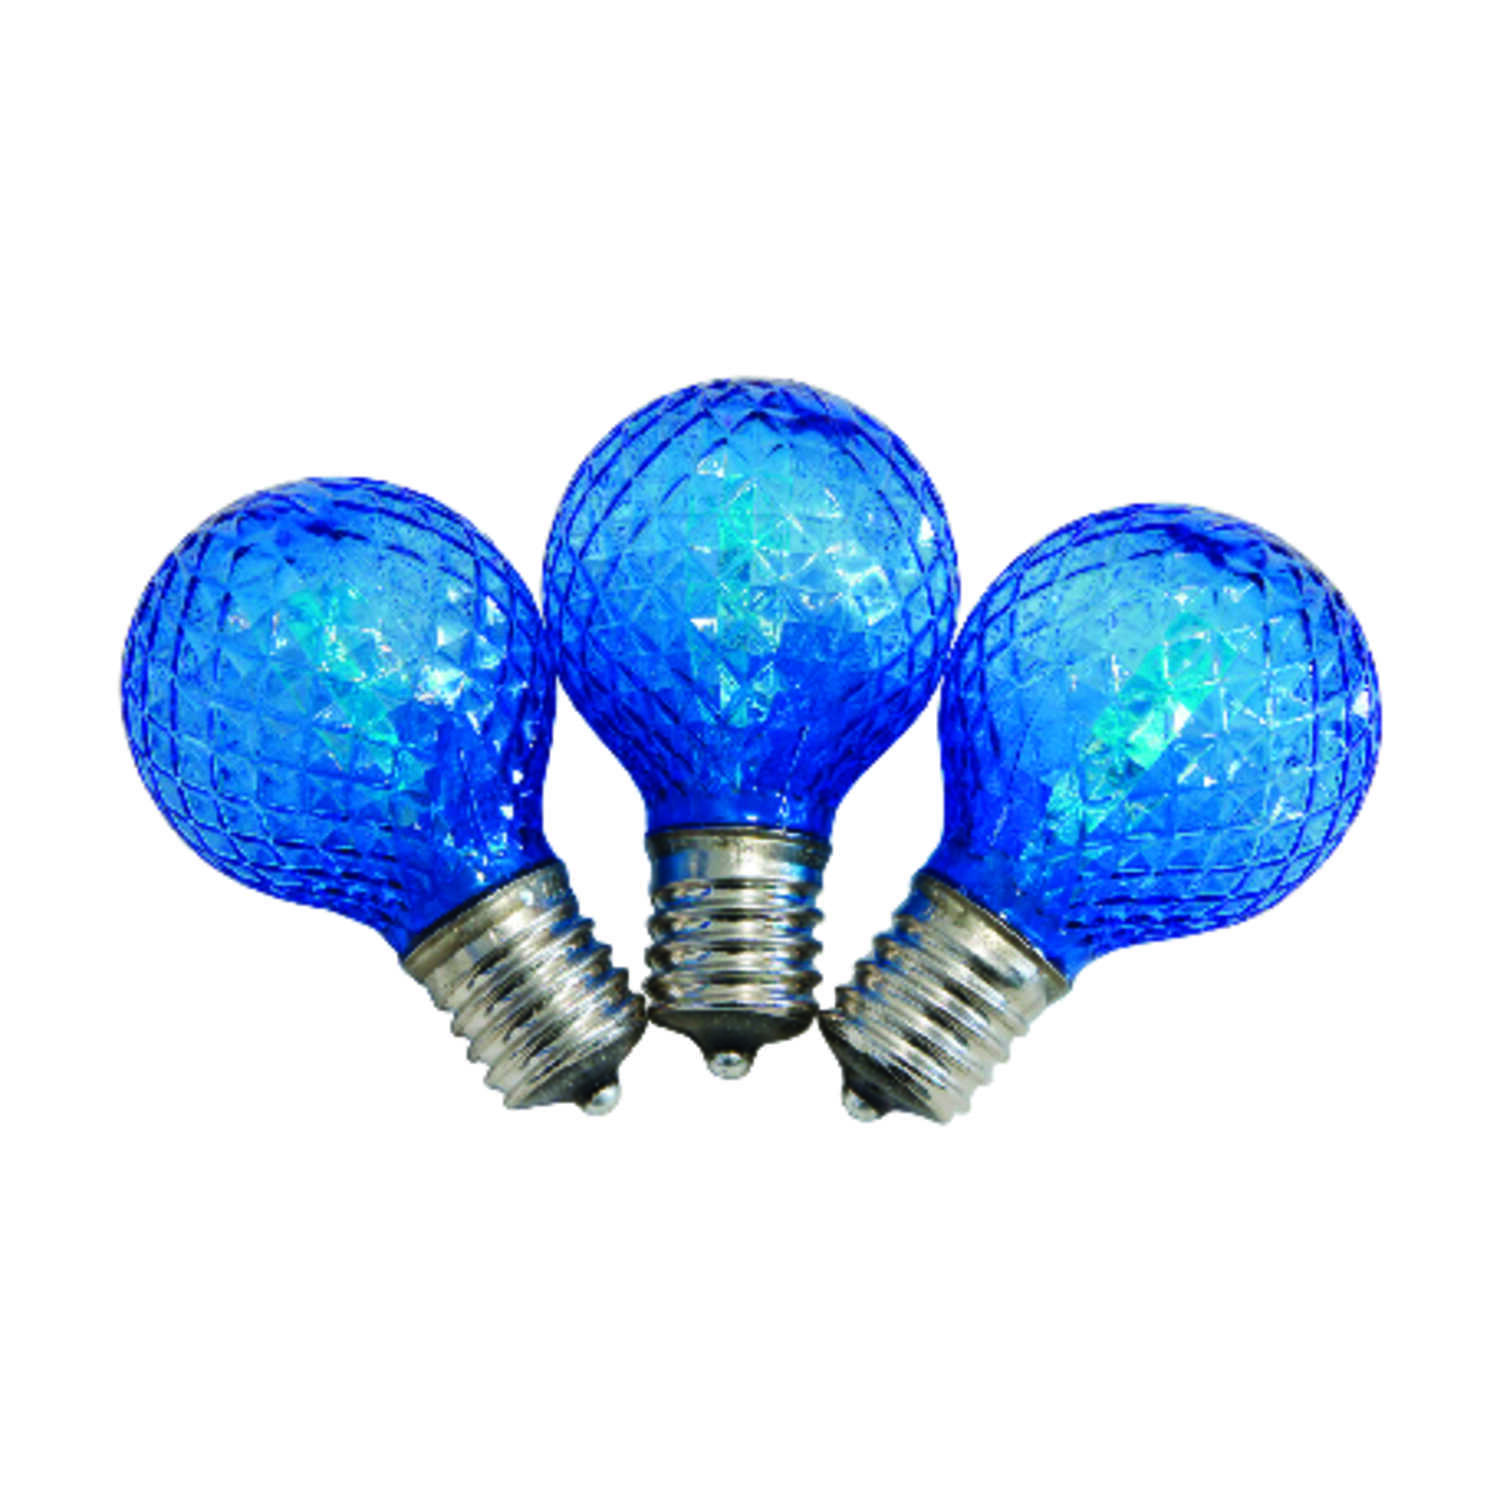 Celebrations  LED  G40  Replacement Bulb  Blue  25 pk